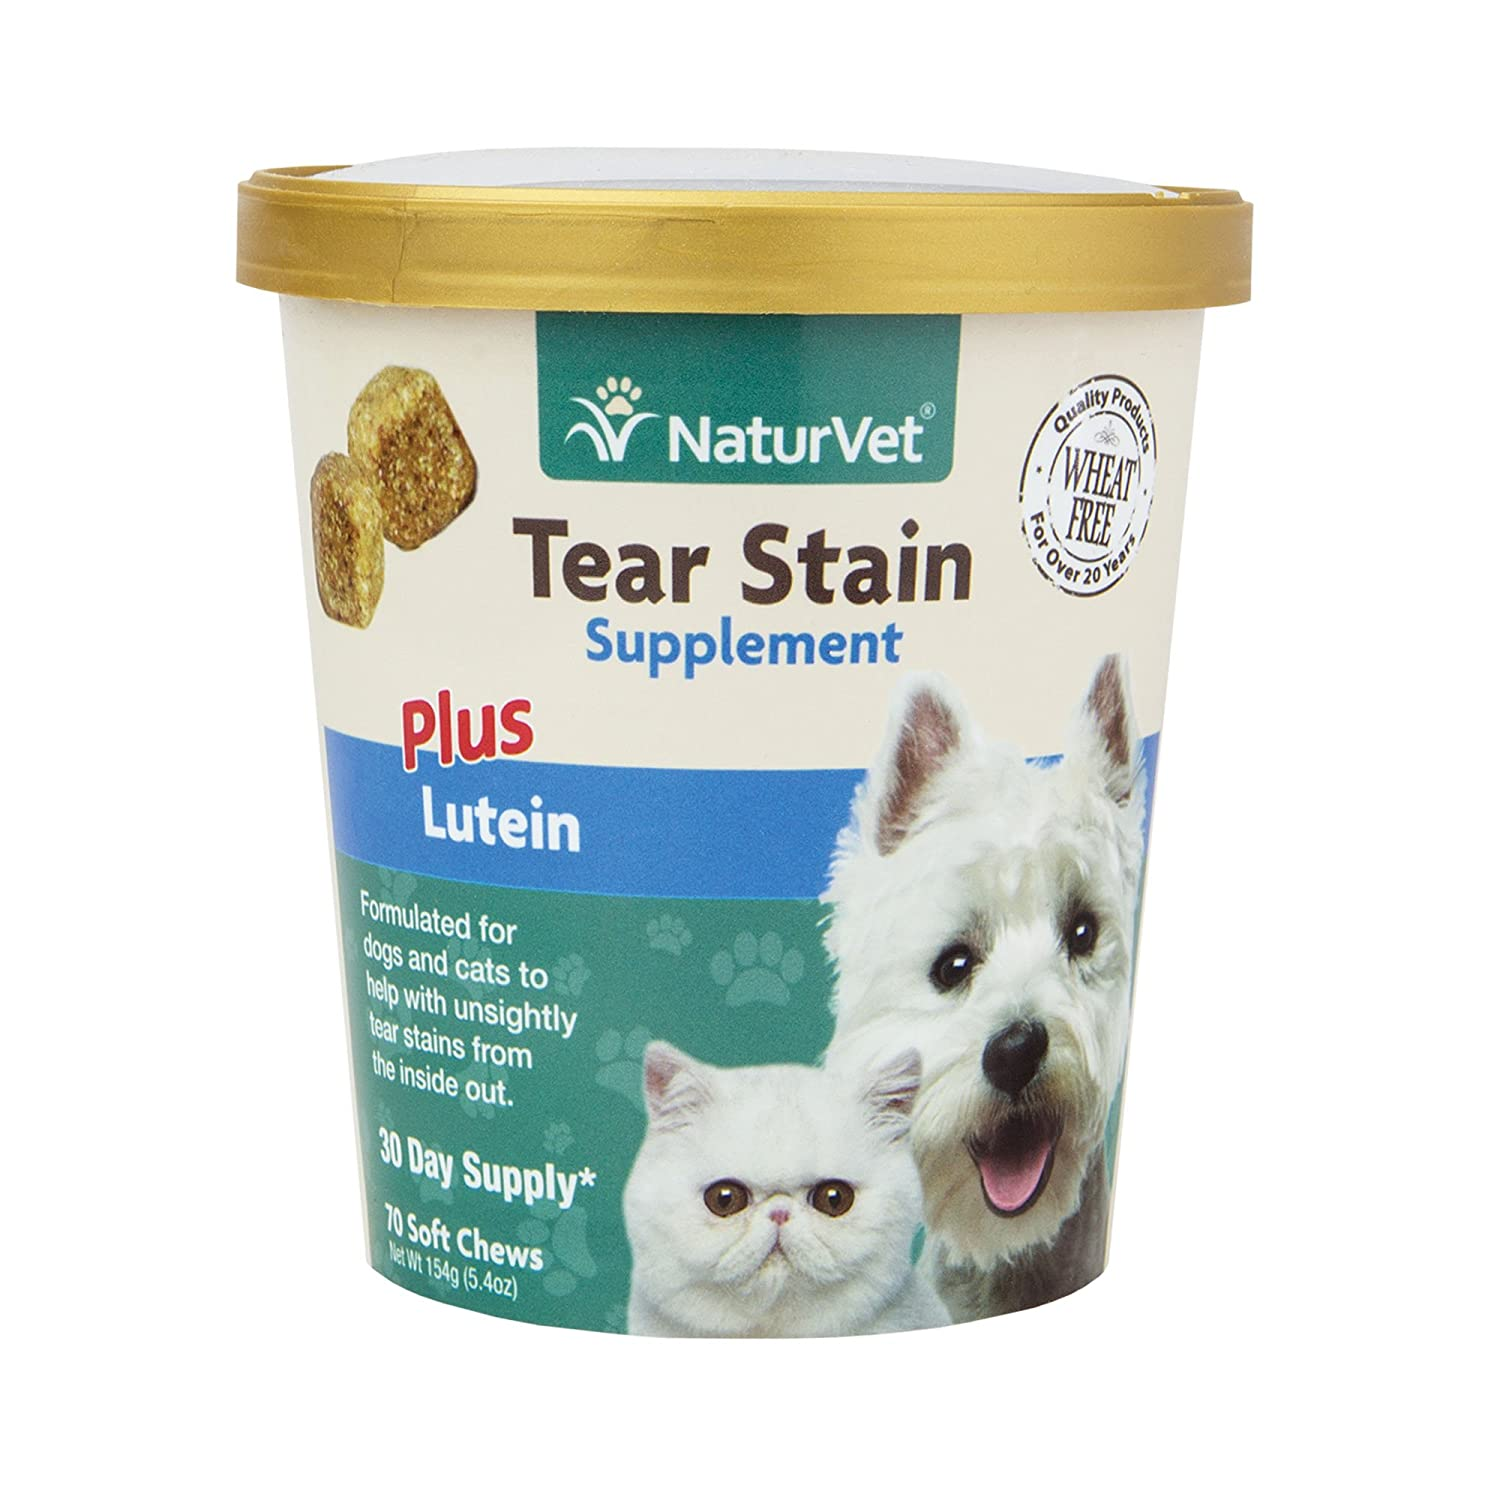 Tear Stain Remover for Dogs and Cats with Lutein, Eye Stain Supplement, Keep Fur Clean with Our Tasty Tear Stain Supplement Soft Chew From NaturVet AniPet Animal Supply 79903693